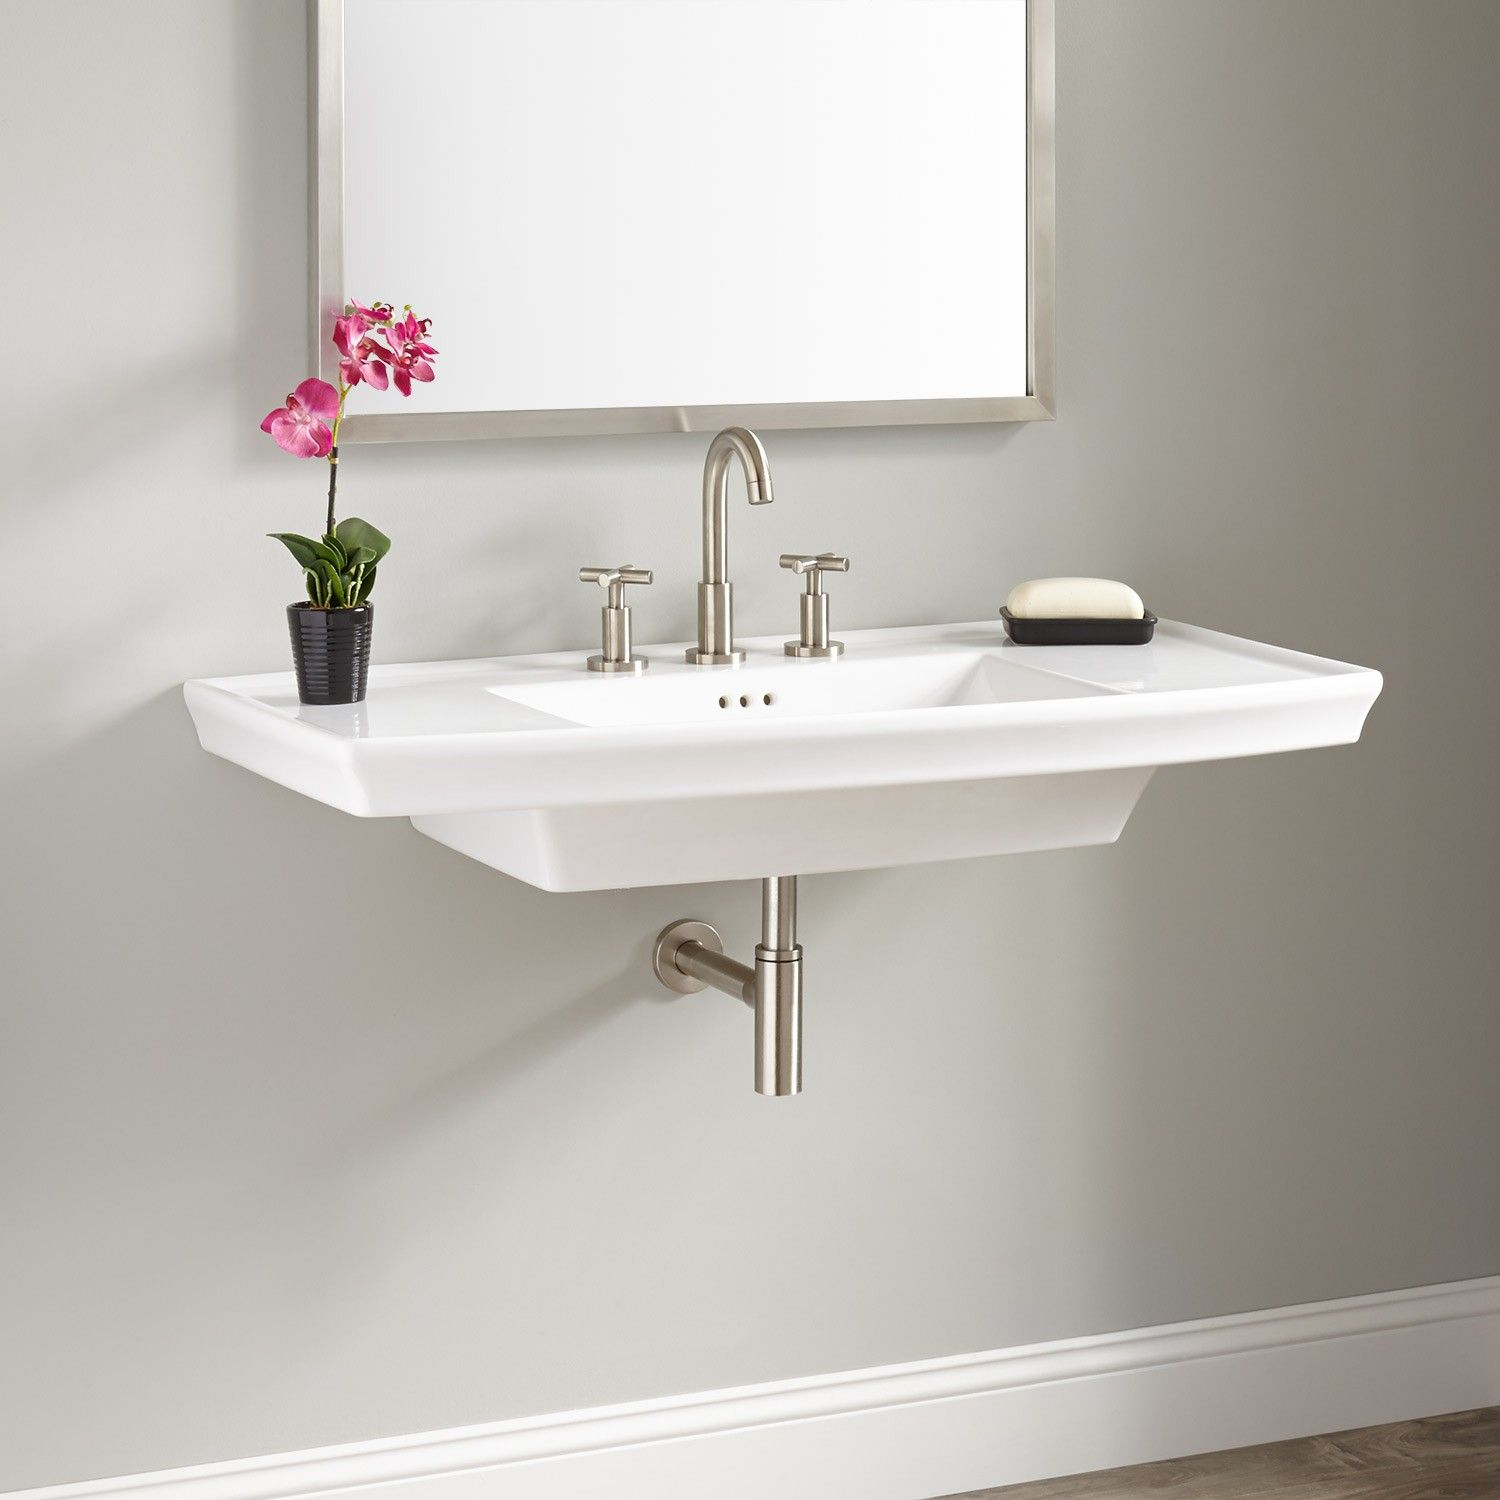 Olney Porcelain Wall Mount Sink